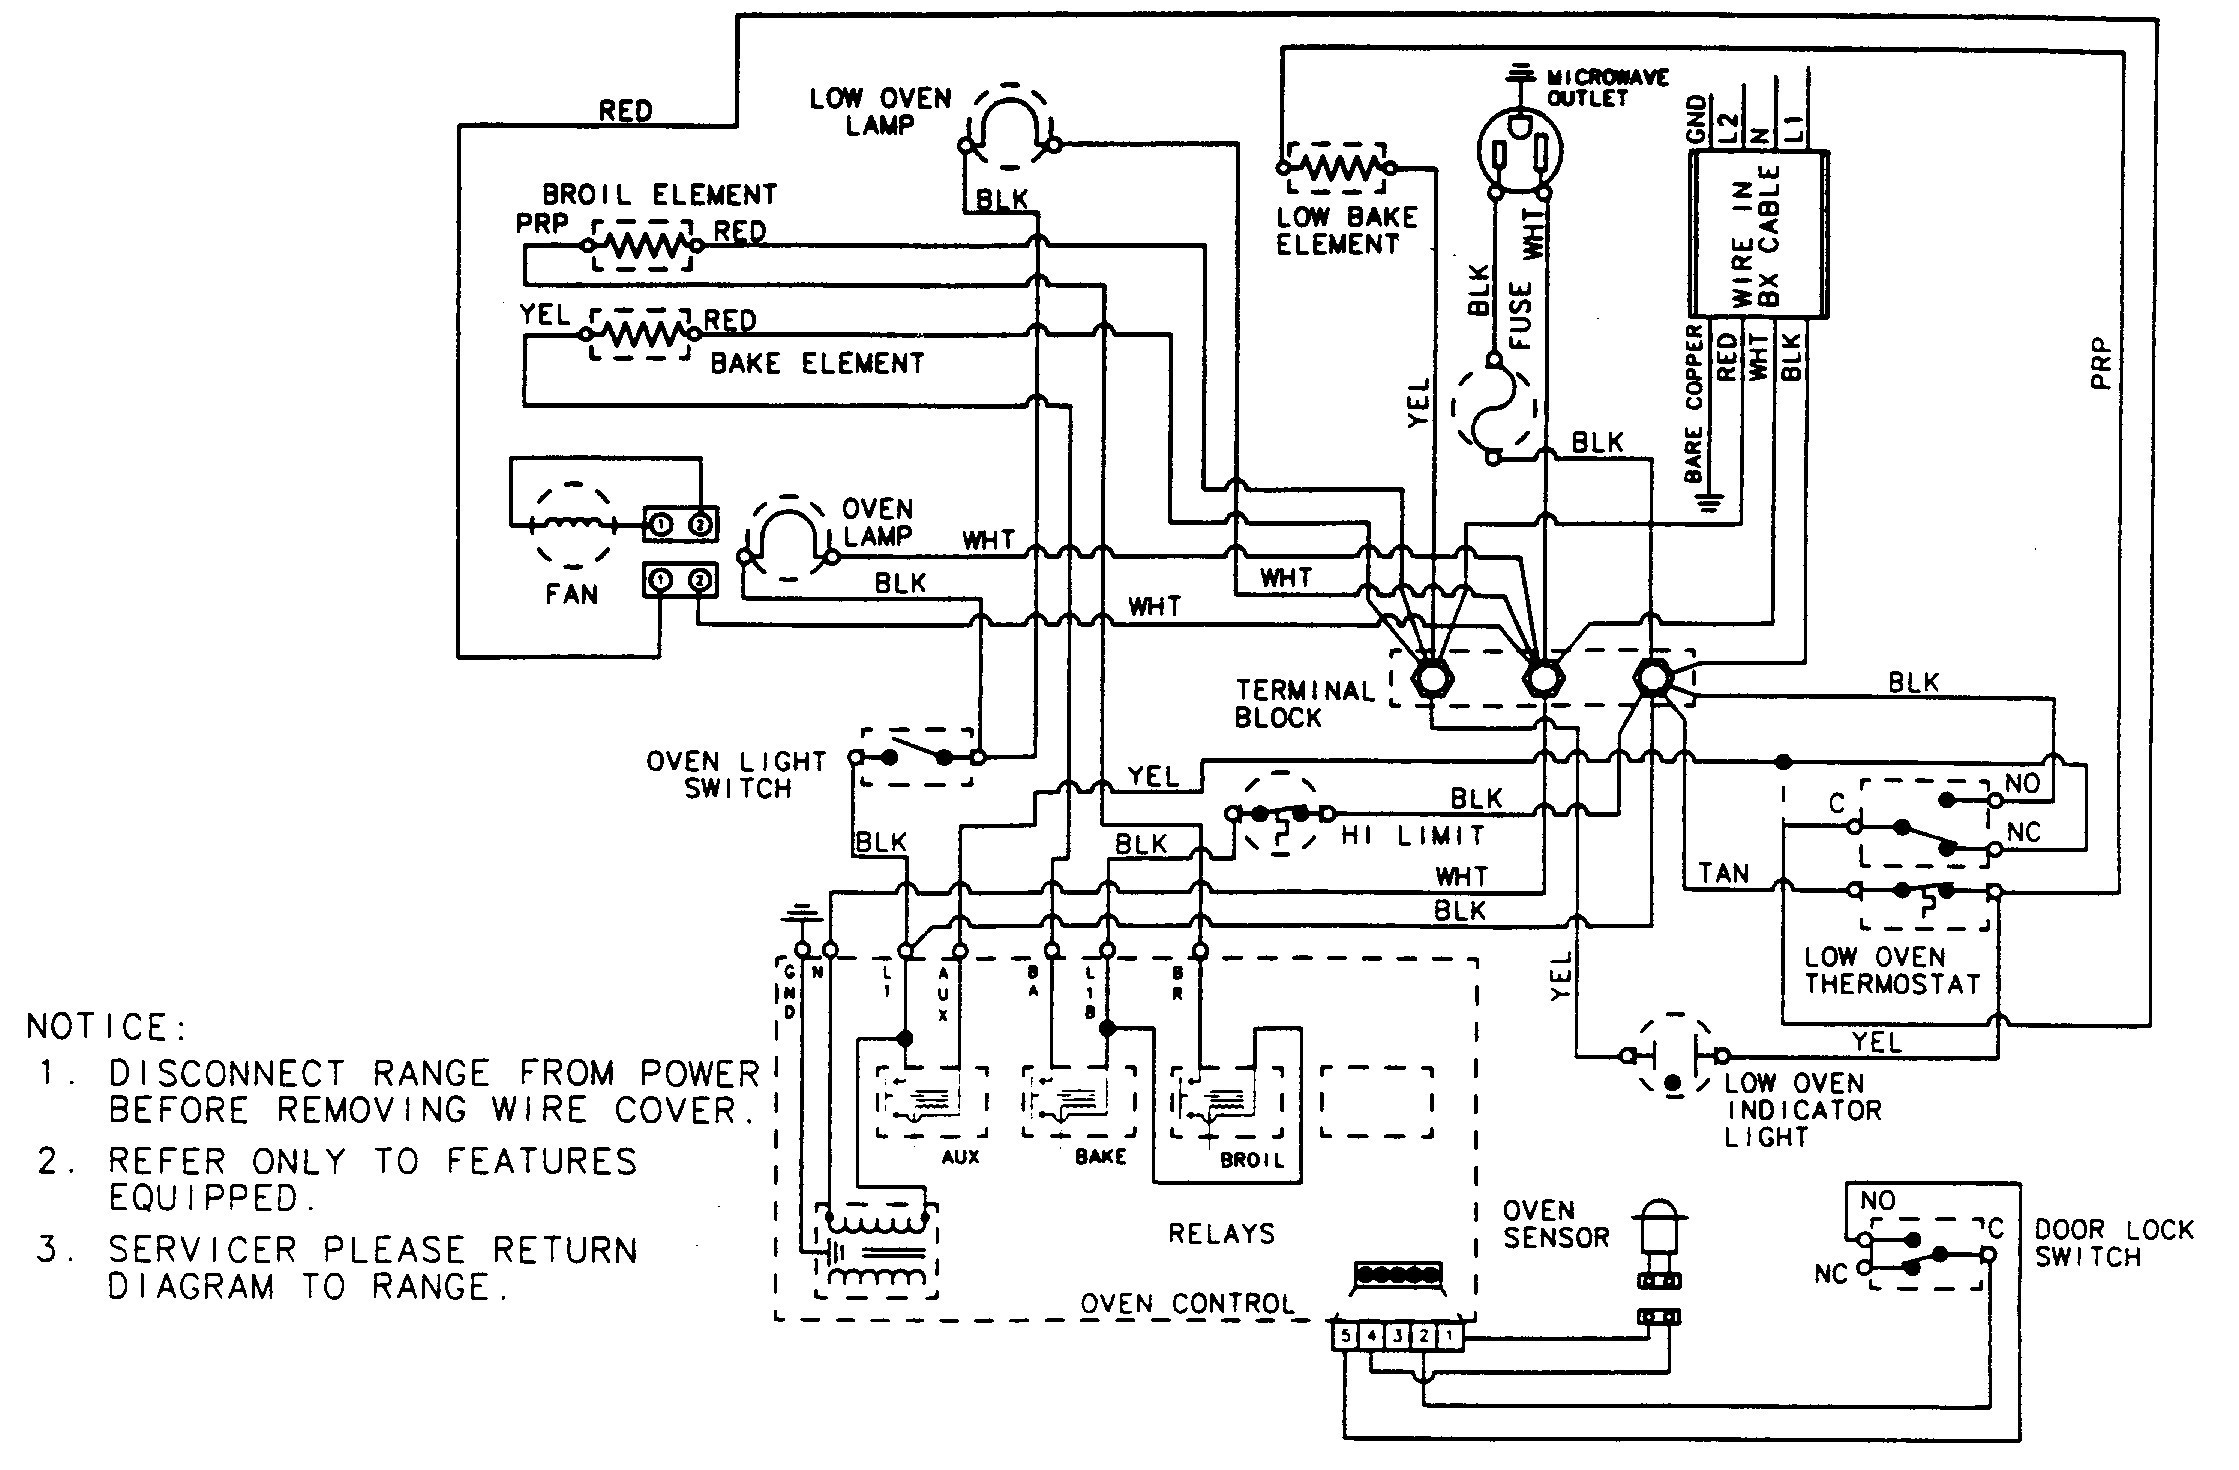 westinghouse wall ovens wiring diagram schematic diagram Kenmore Microwave Wiring Diagram 1960 westinghouse wall ovens wiring diagram best wiring library kenmore wall oven wiring diagram 1960 westinghouse